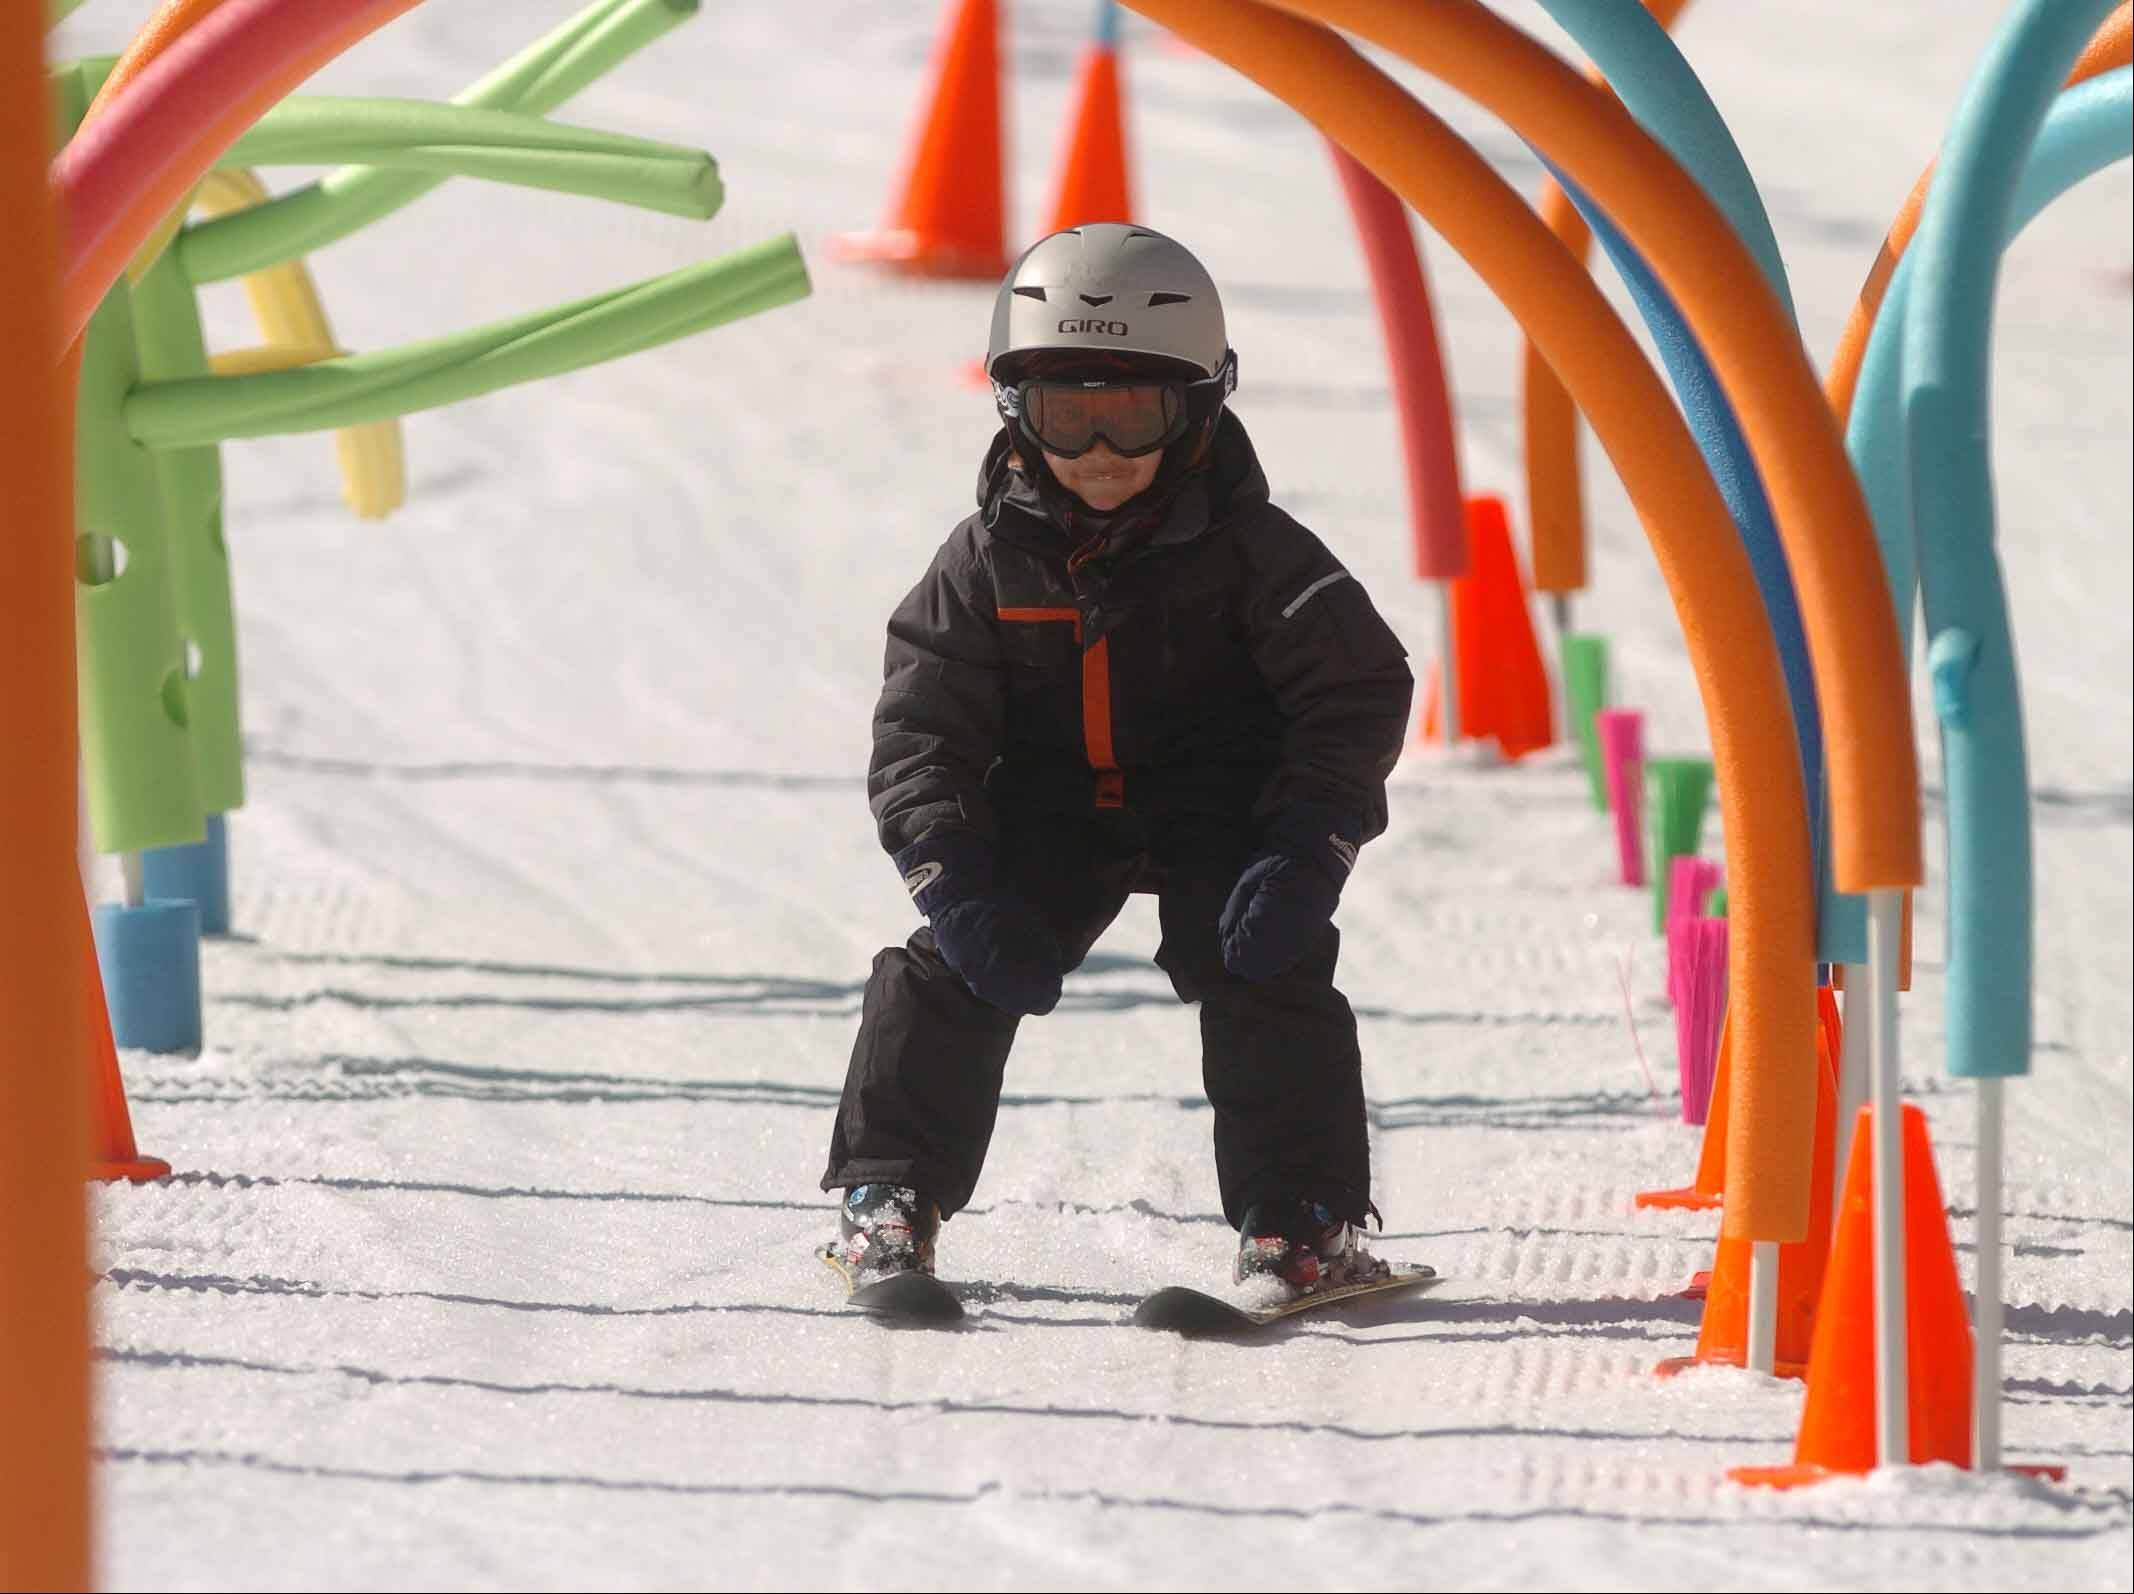 All ages can learn to ski at Four Lakes. Children as young as 4 can take classes, while last year's eldest student was older than 80.